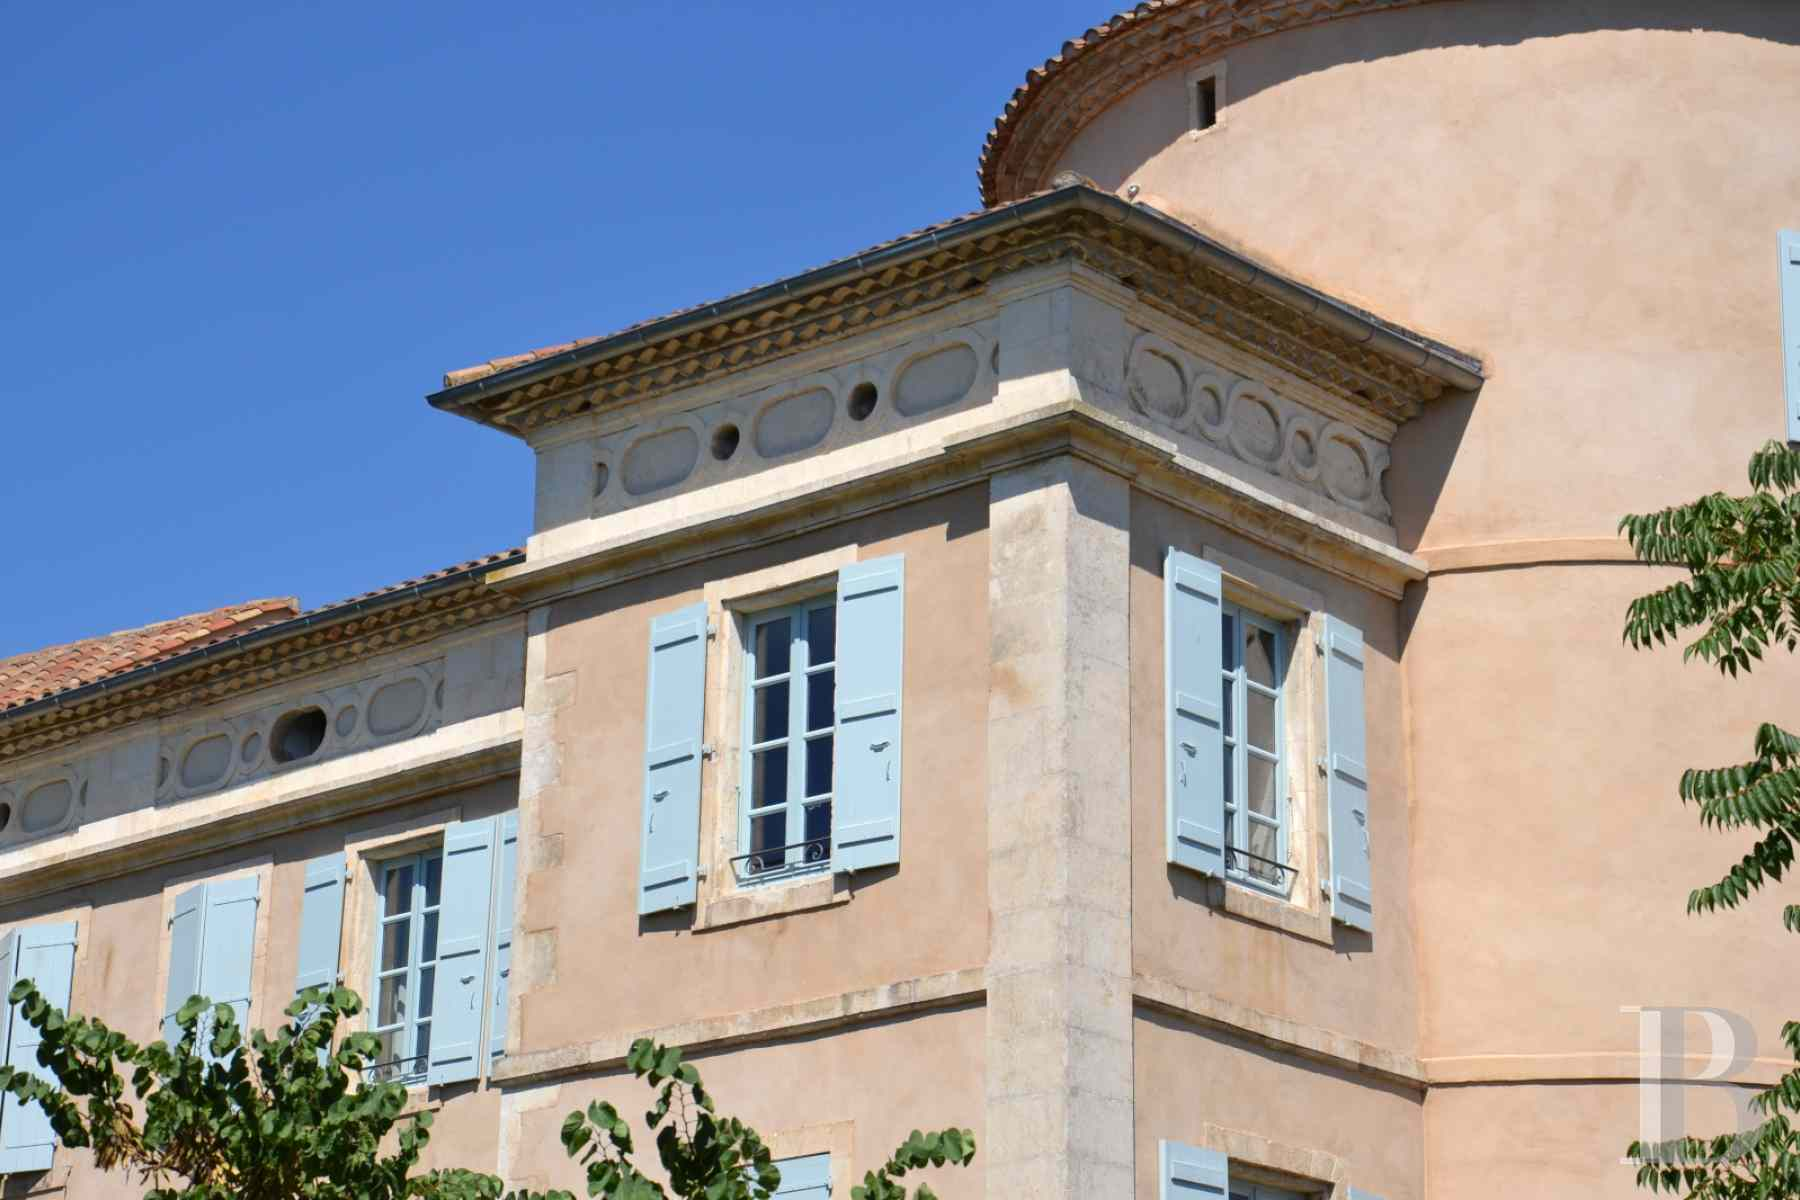 chateaux for sale France languedoc roussillon chateau 18th - 5 zoom